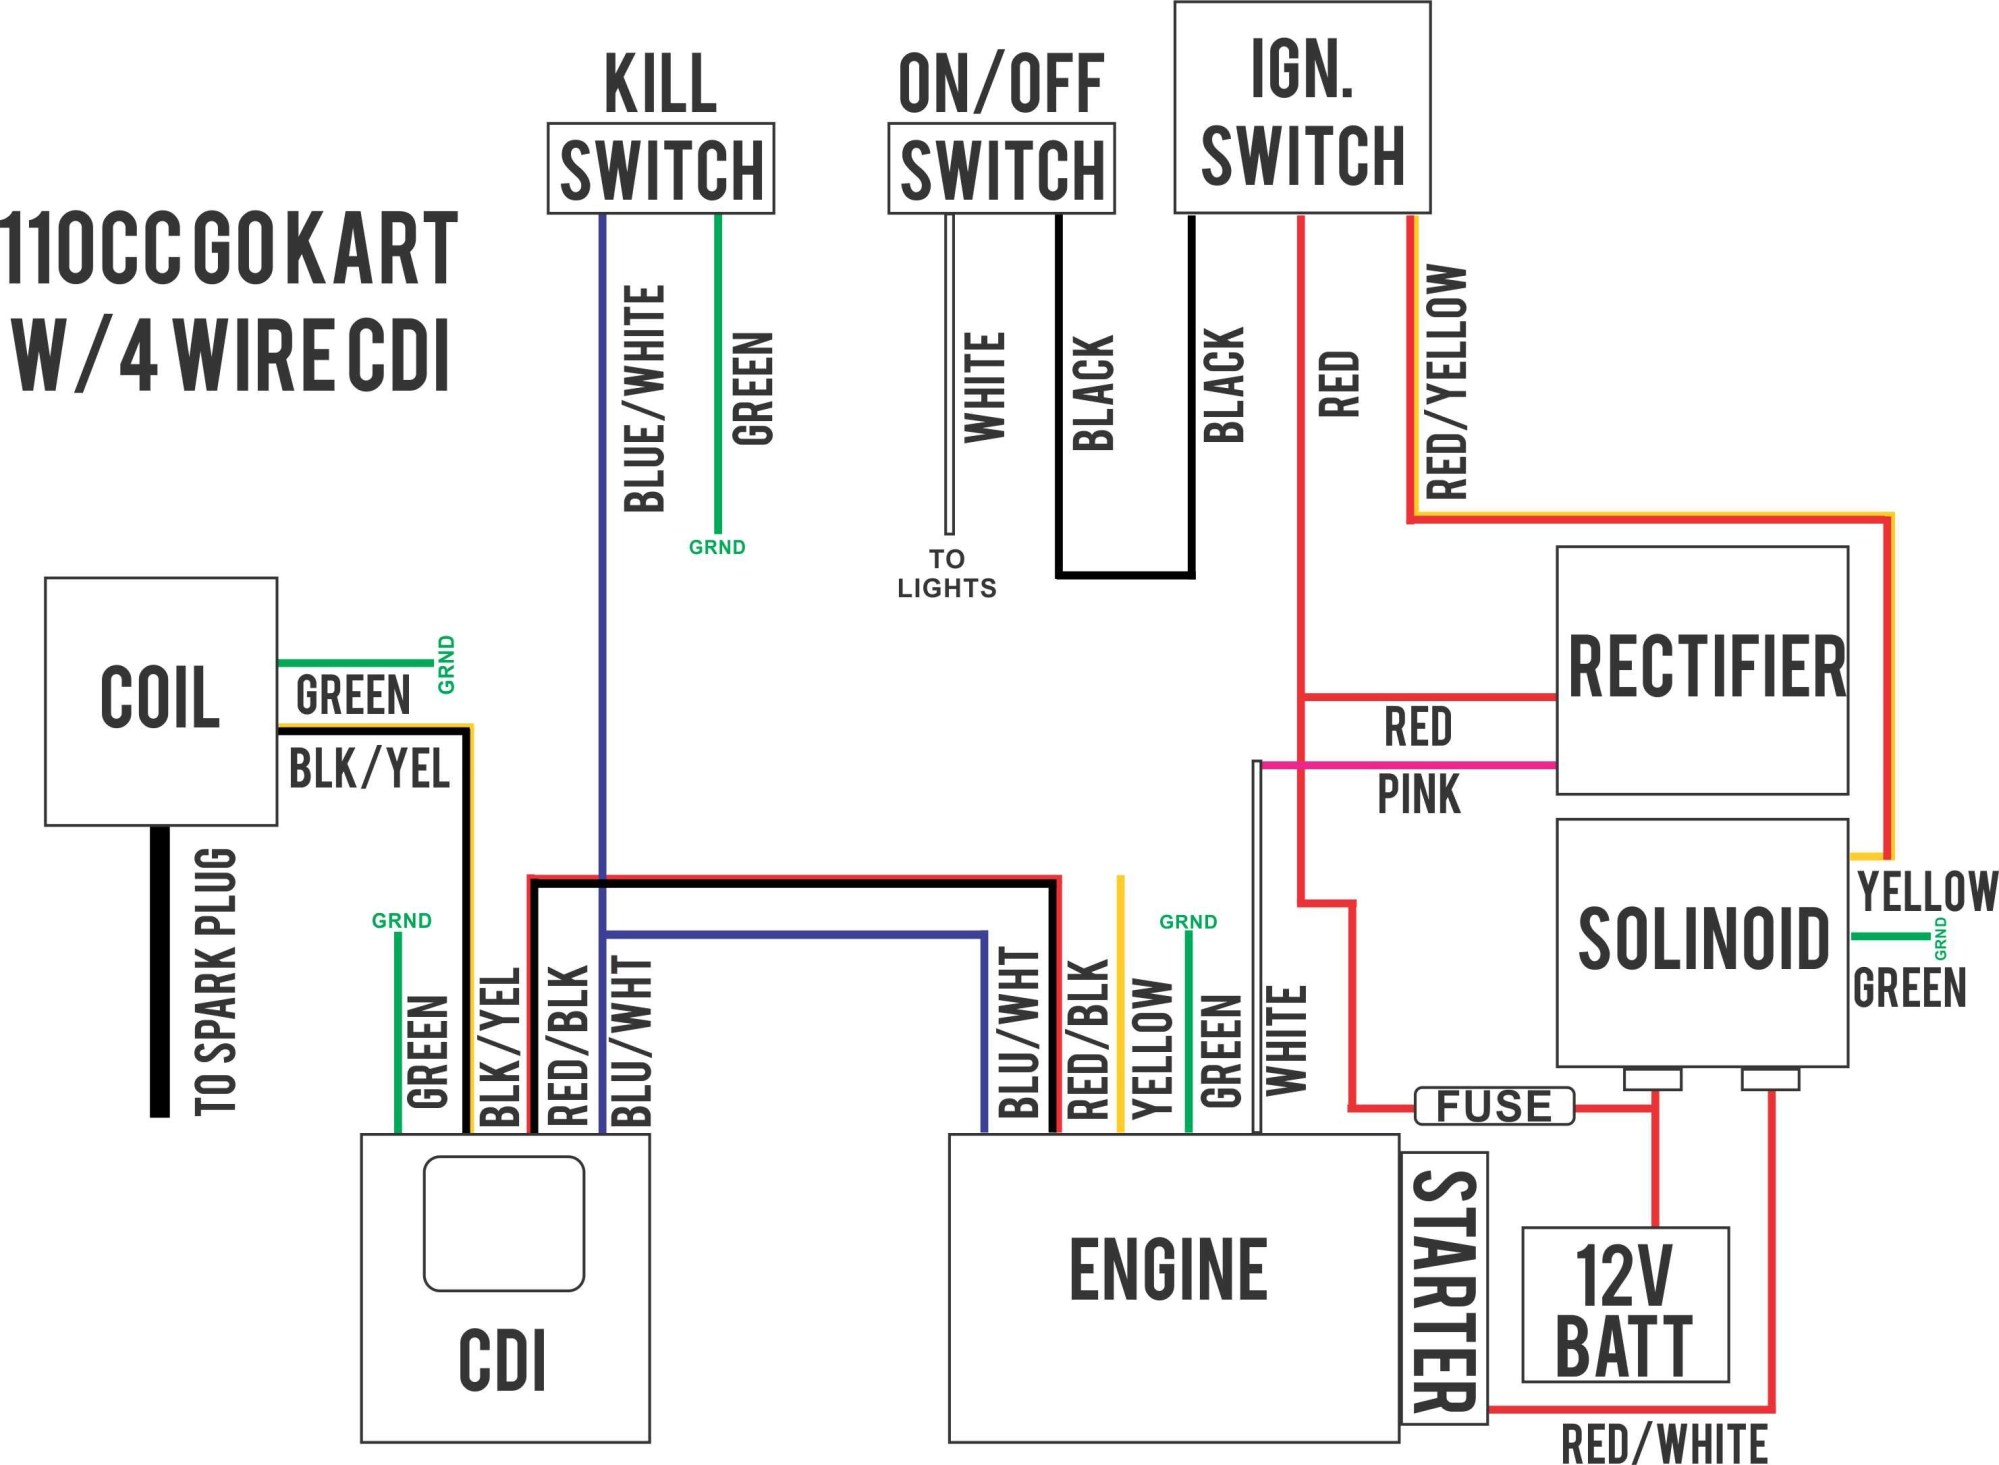 hight resolution of suzuki ltr 450 fuse box data diagram schematic suzuki ltr 450 fuse box